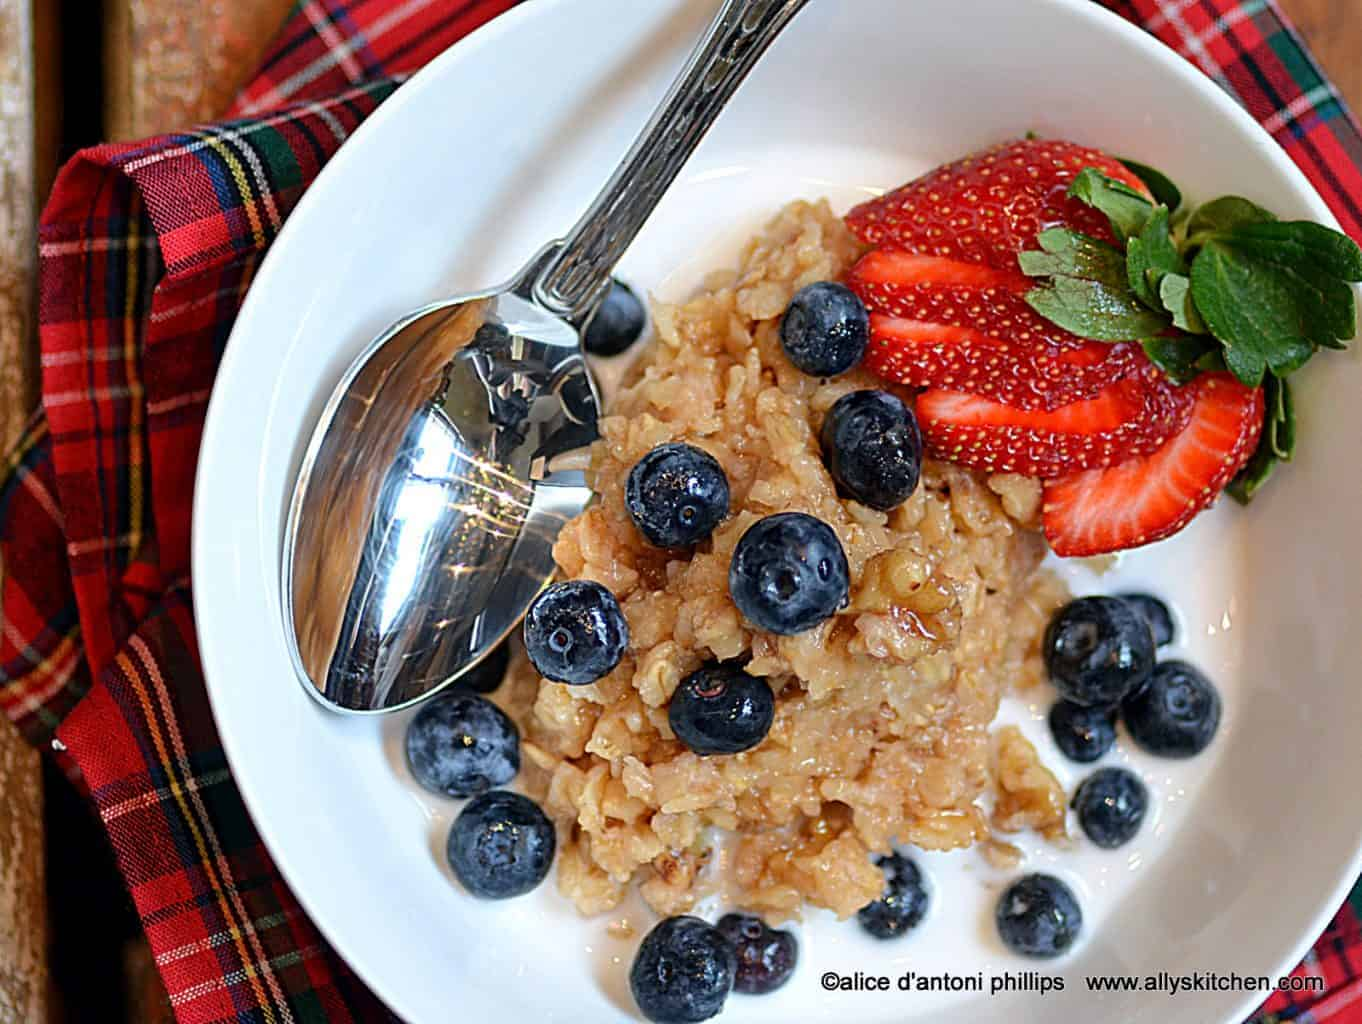 citrus honey nut oatmeal with cream & fresh fruit